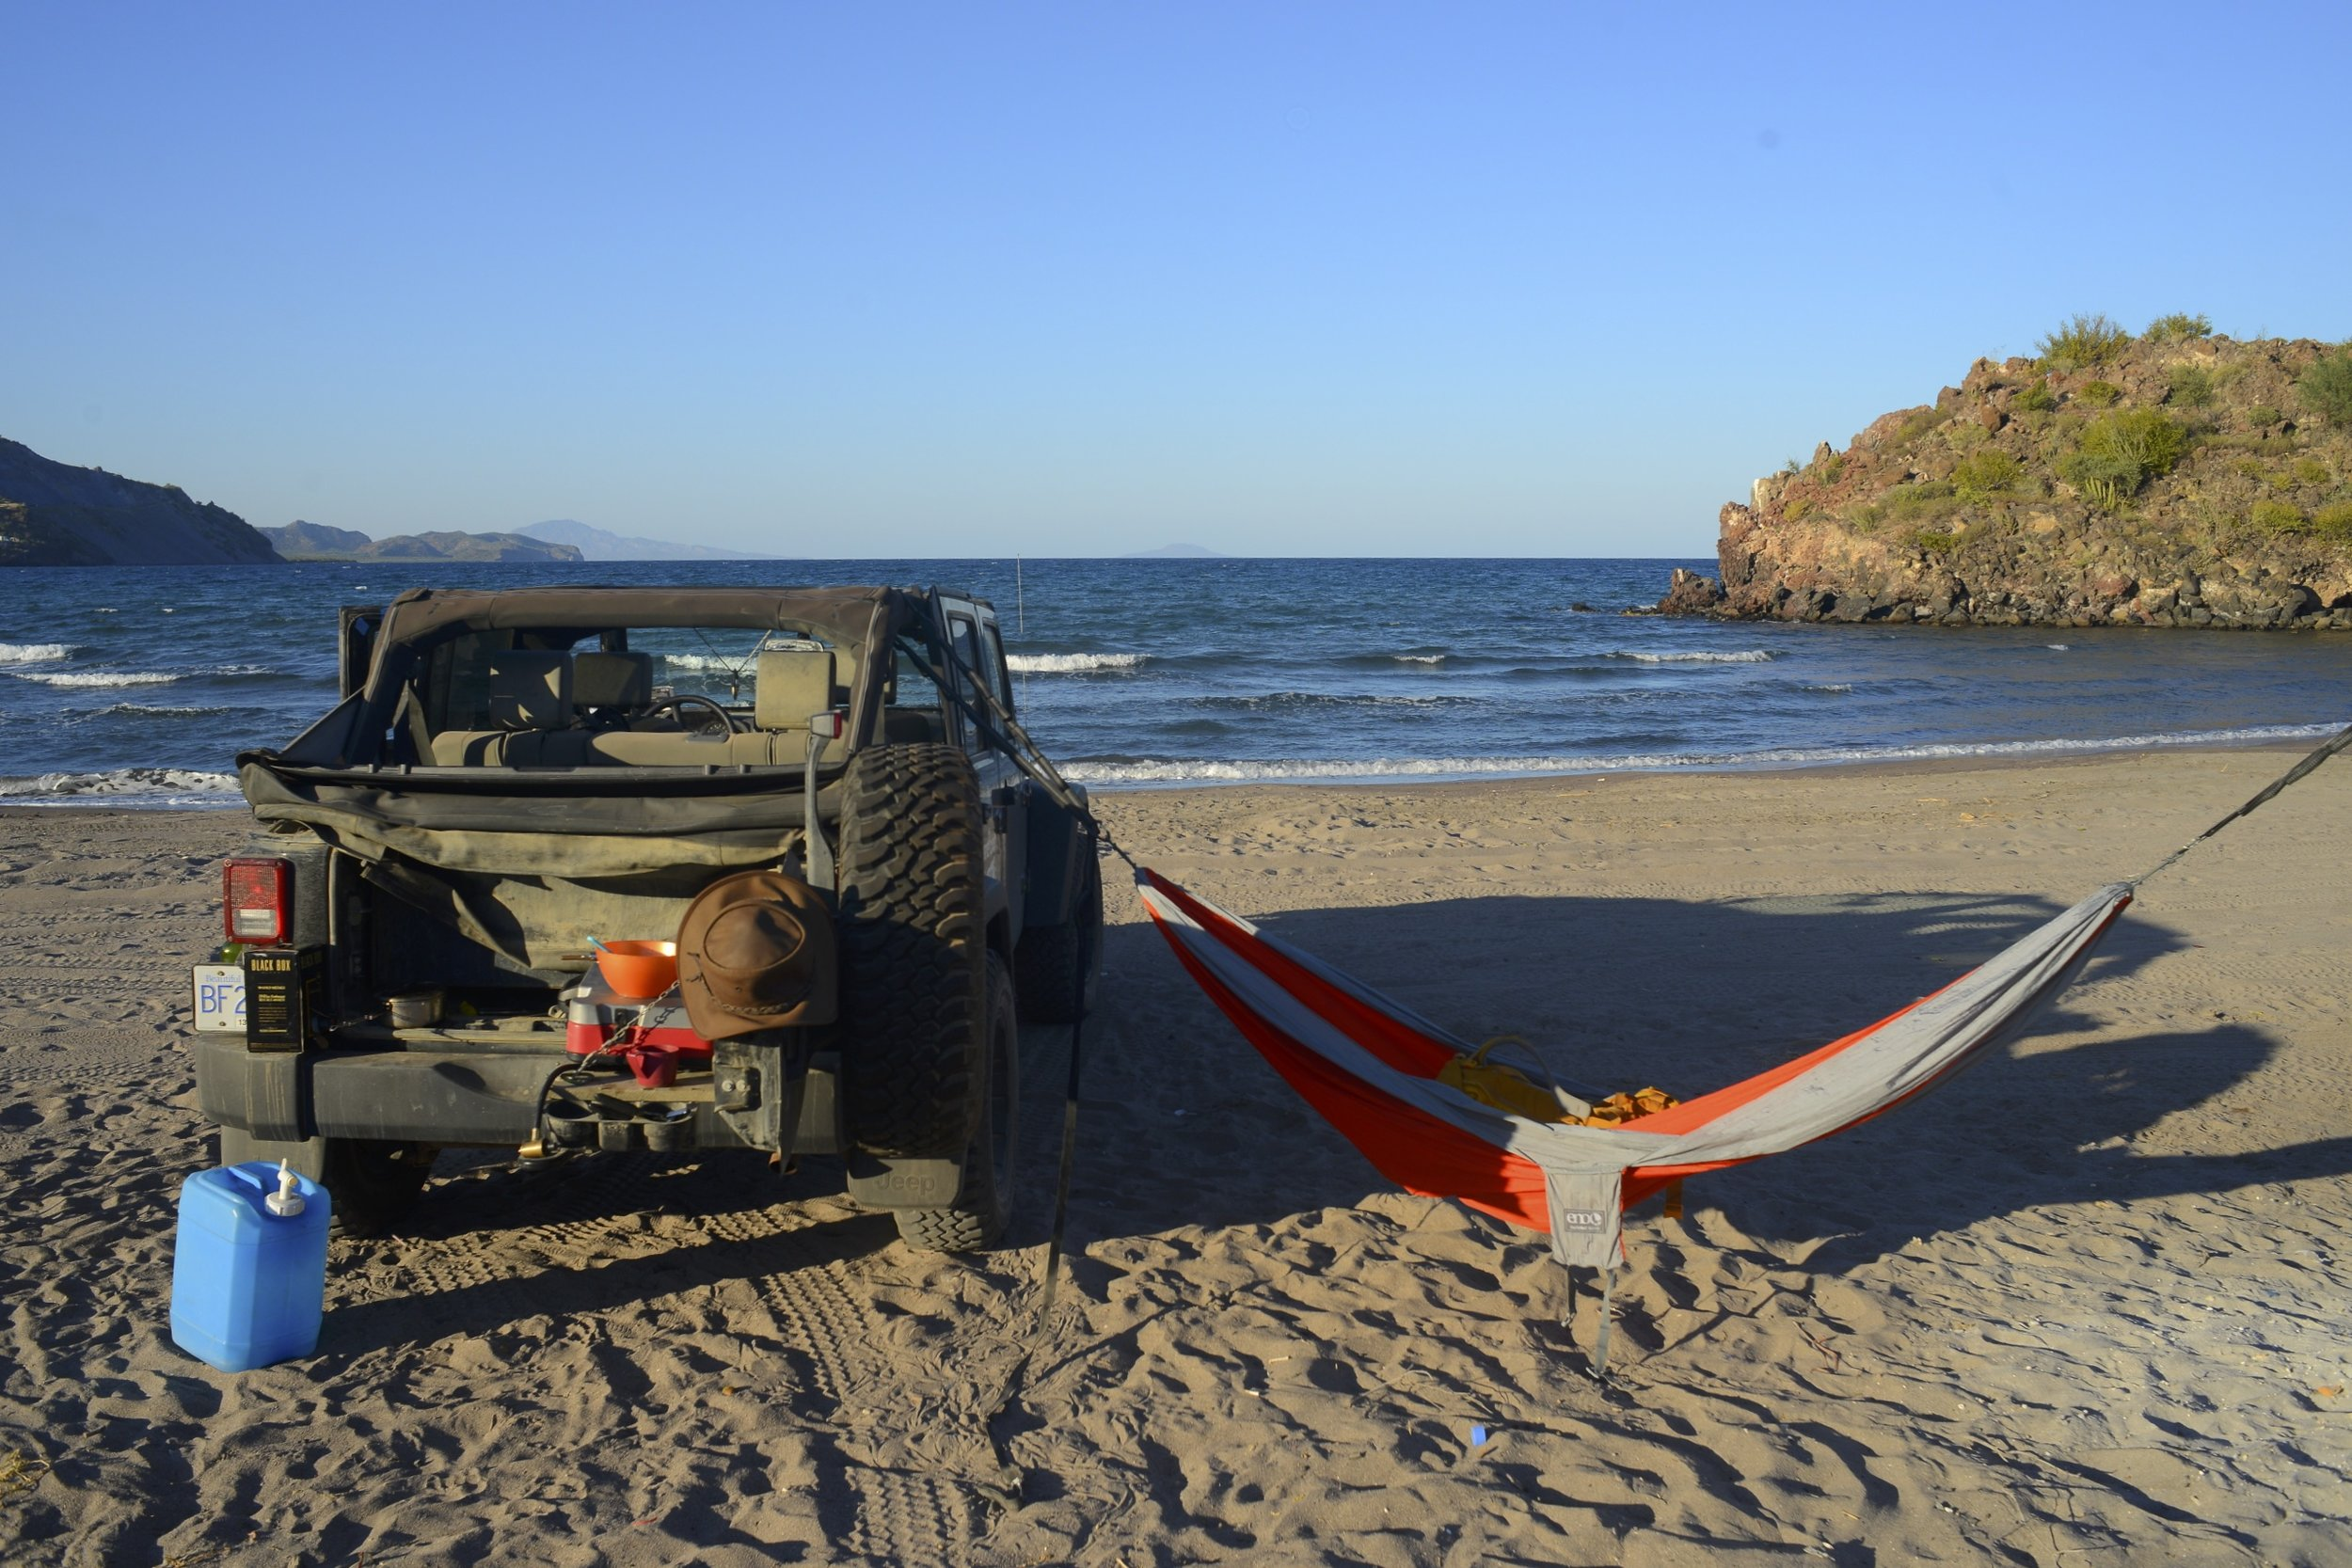 Livin' the dream in Baja! Life does NOT get better than this.